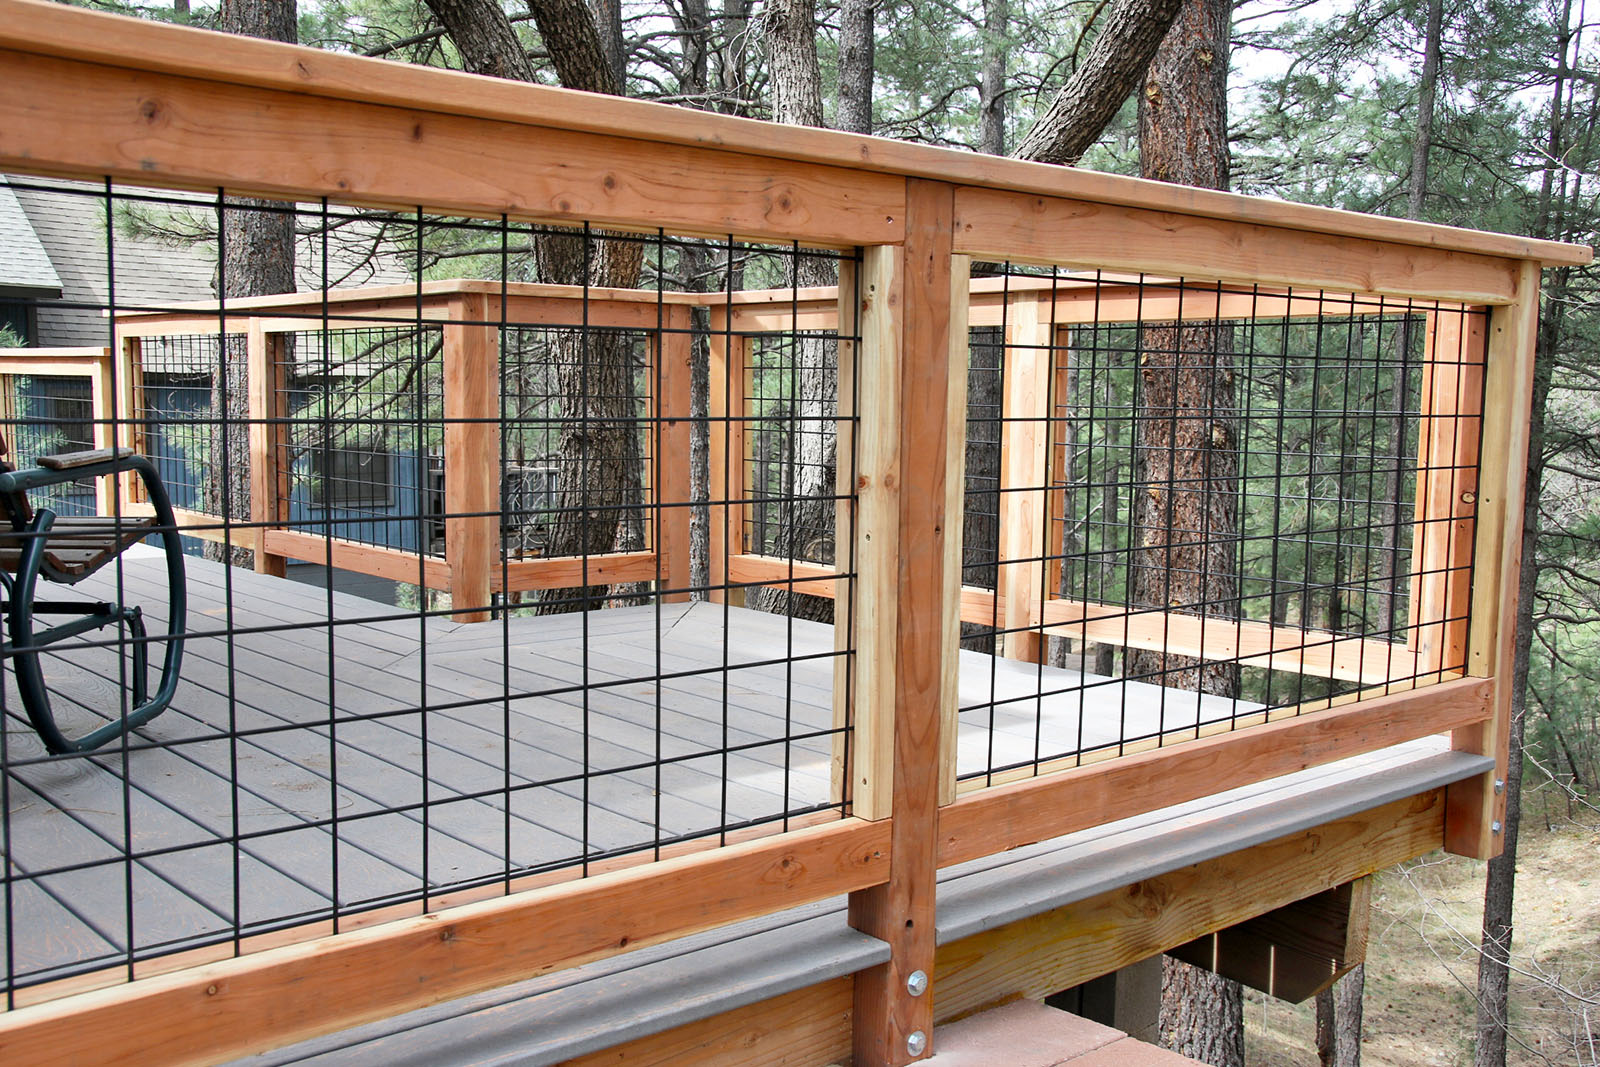 Wild Hog Brand Metal Deck Railing Installed On A Deck In Kachina Village  Near Flagstaff Arizona